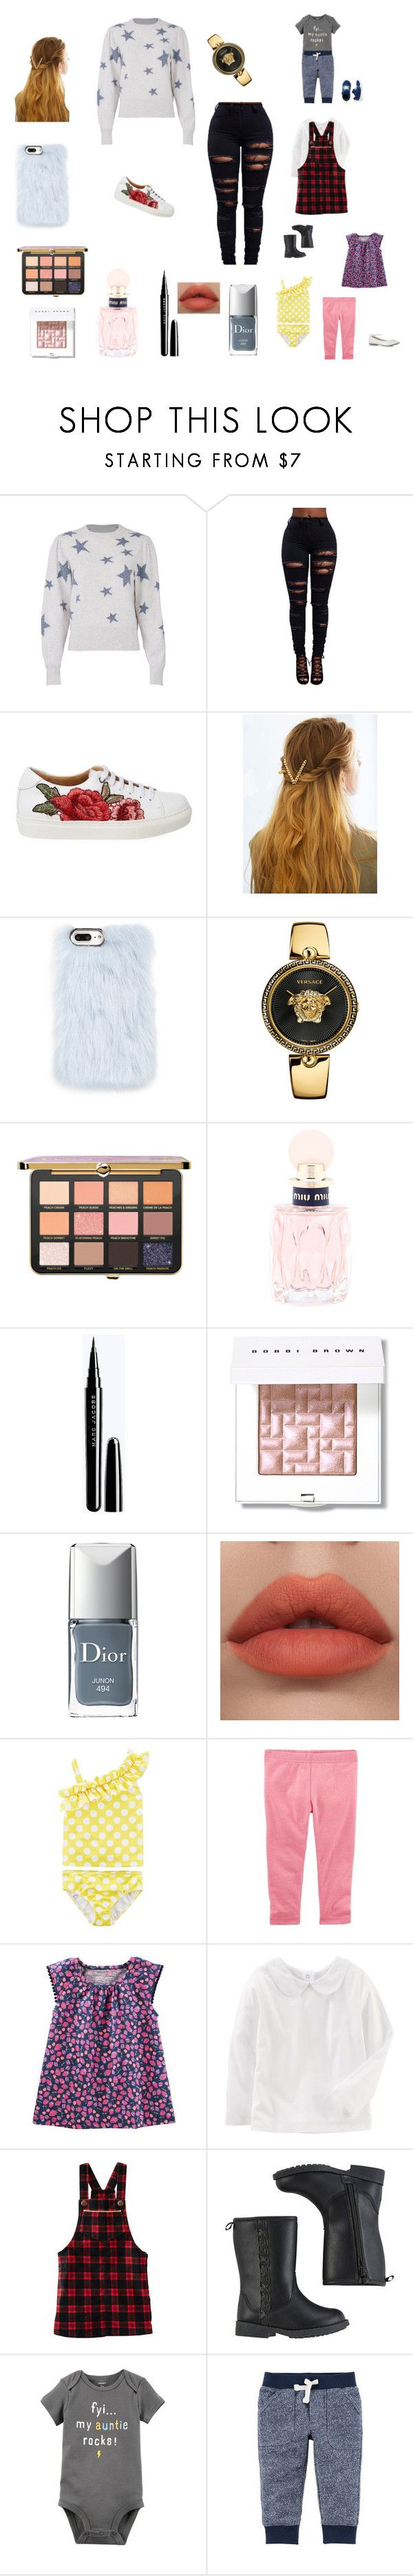 """Holly's first swimming lesson"" by bellzellz ❤ liked on Polyvore featuring Rebecca Taylor, WithChic, Skinnydip, Versace, Miu Miu, Bobbi Brown Cosmetics, Christian Dior and Carter's"